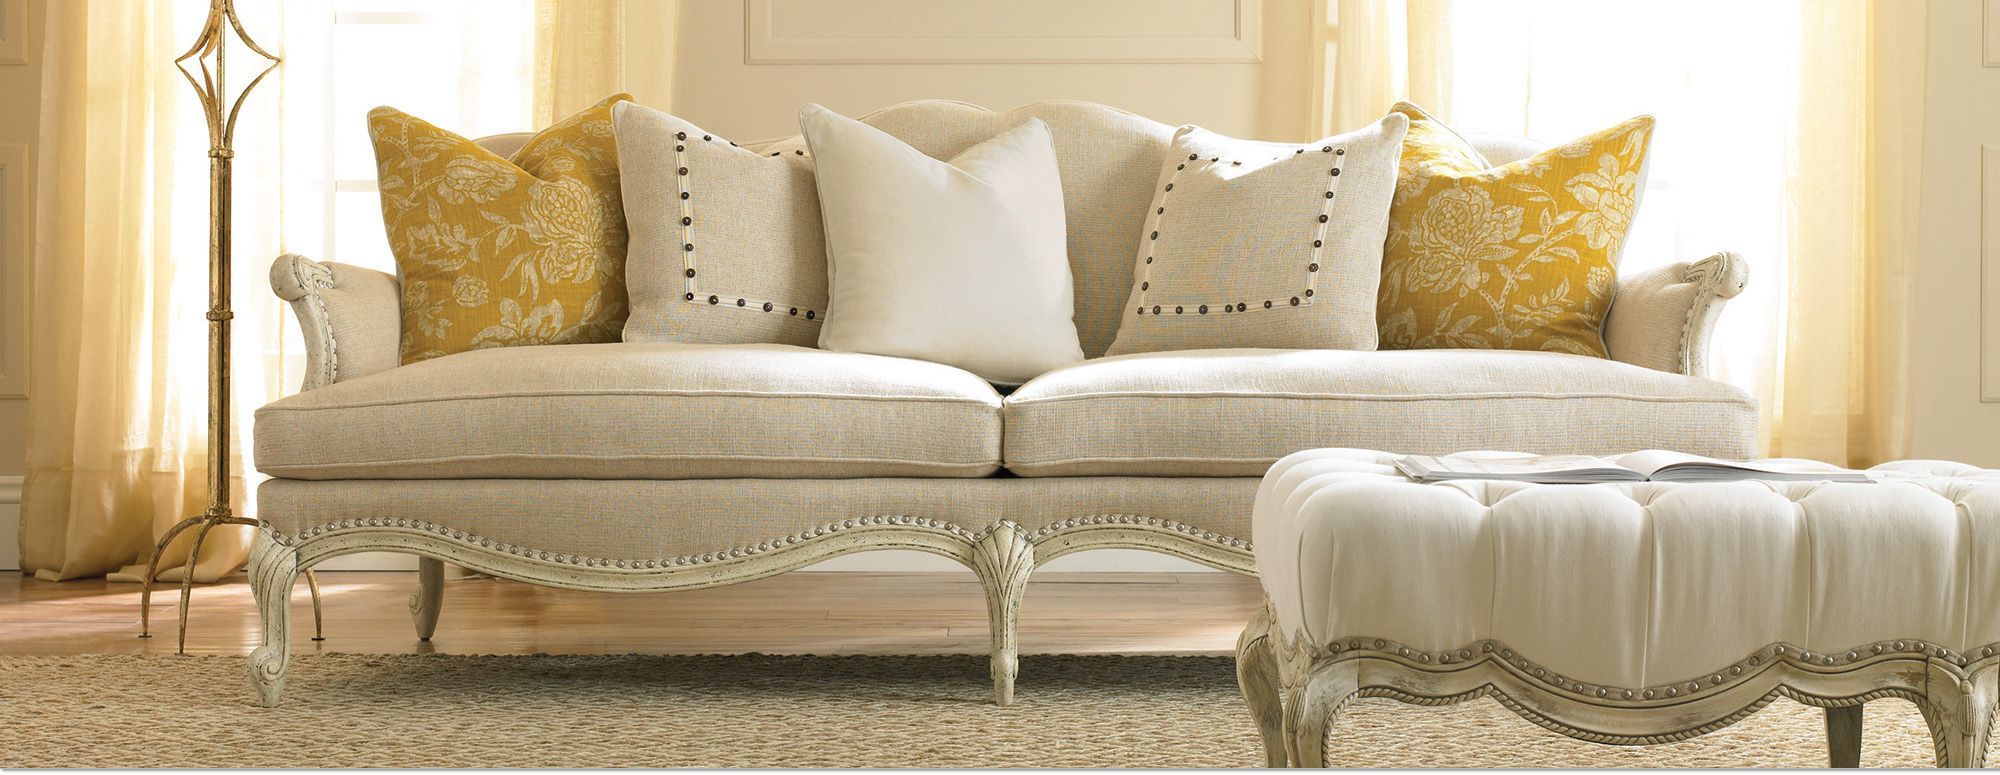 Camelback sofa in modern linens | Are you Traditional? - Classic Fren ...